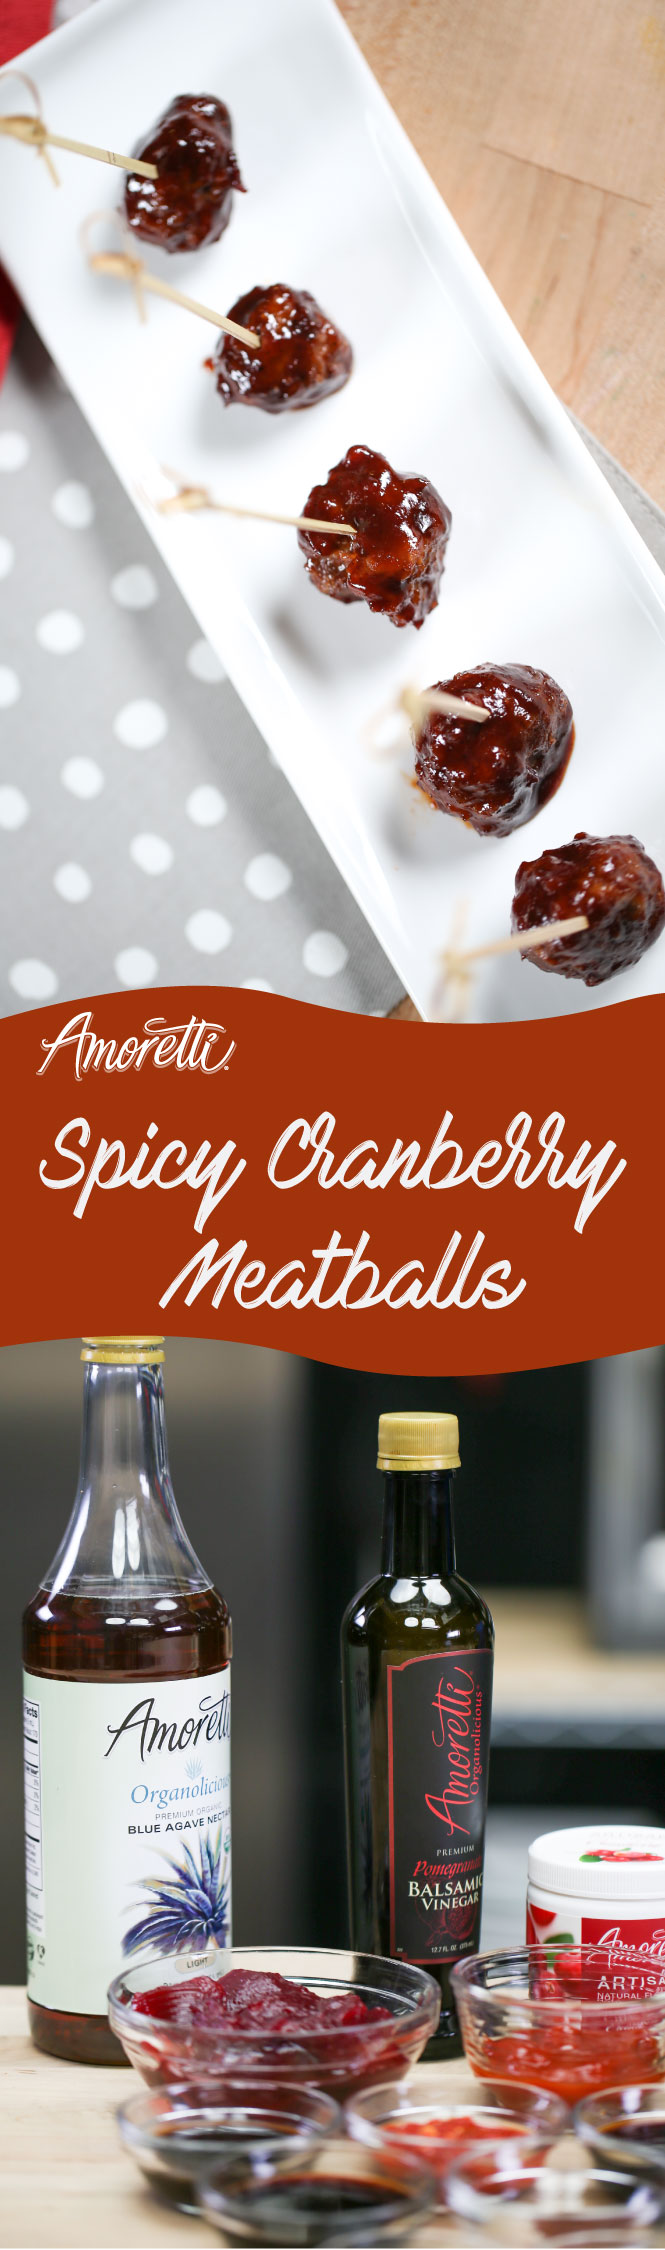 The perfect party finger-food, these meatballs are easy to make and so delicious they'll disappear in an instant!